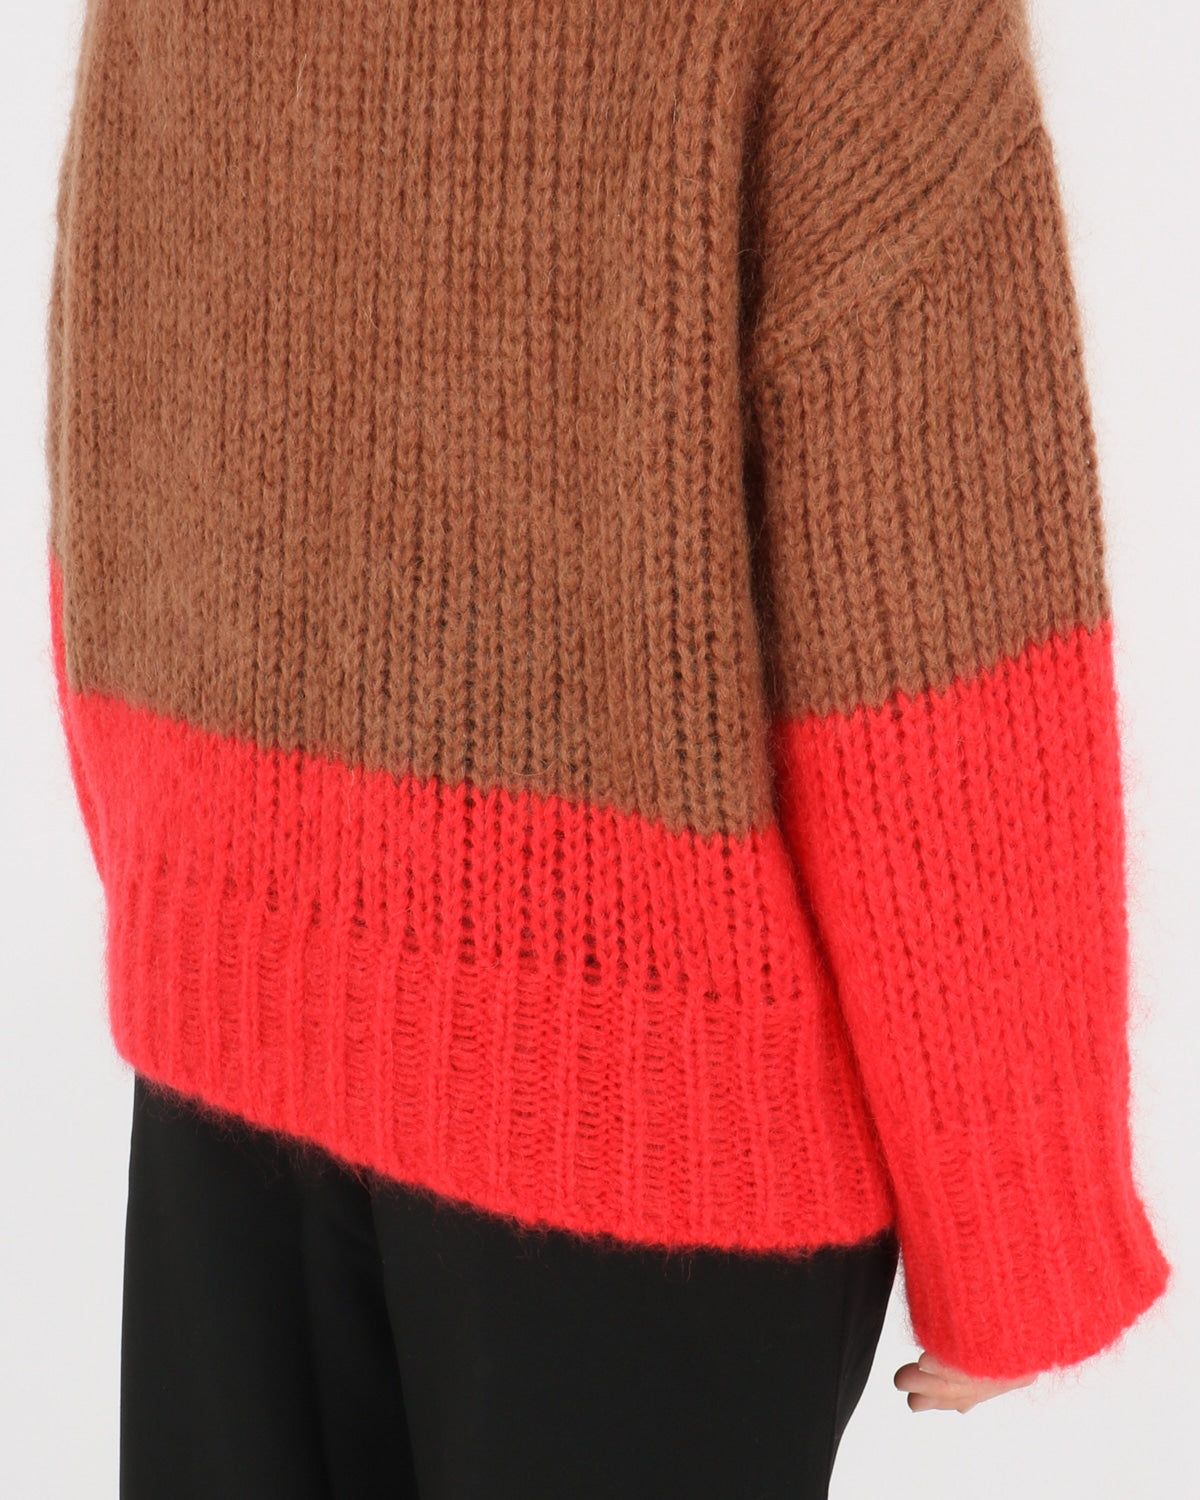 libertine libertine_pyros knit_camel bright red_3_4